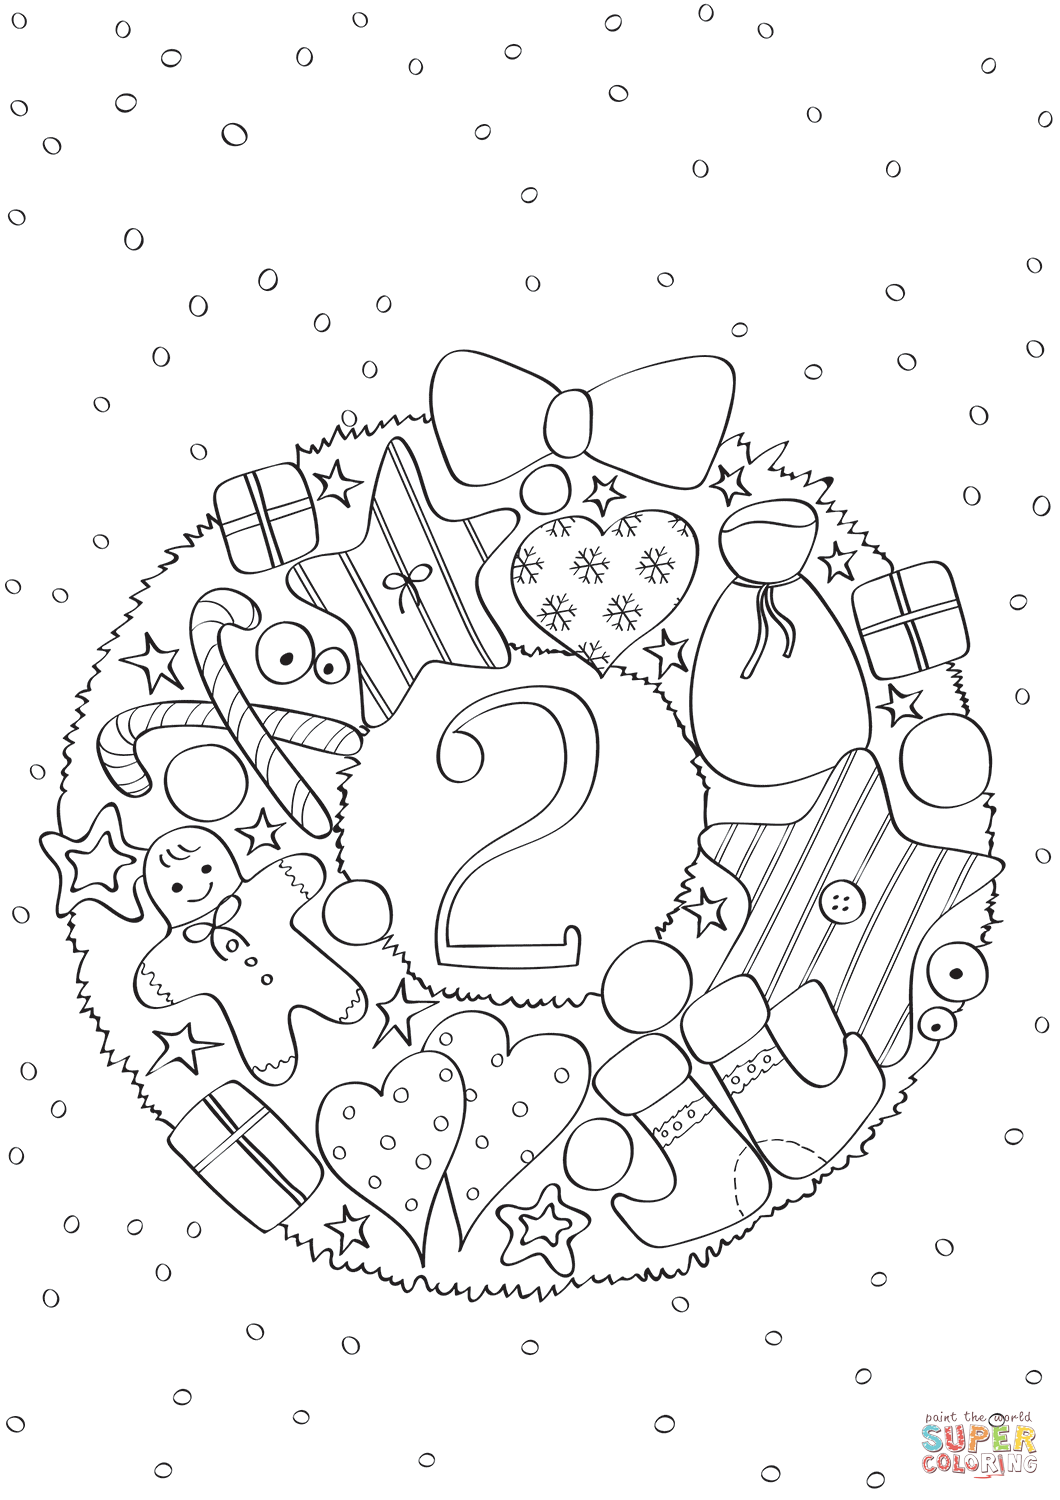 December 2 With Christmas Wreath Coloring Page Free Printable